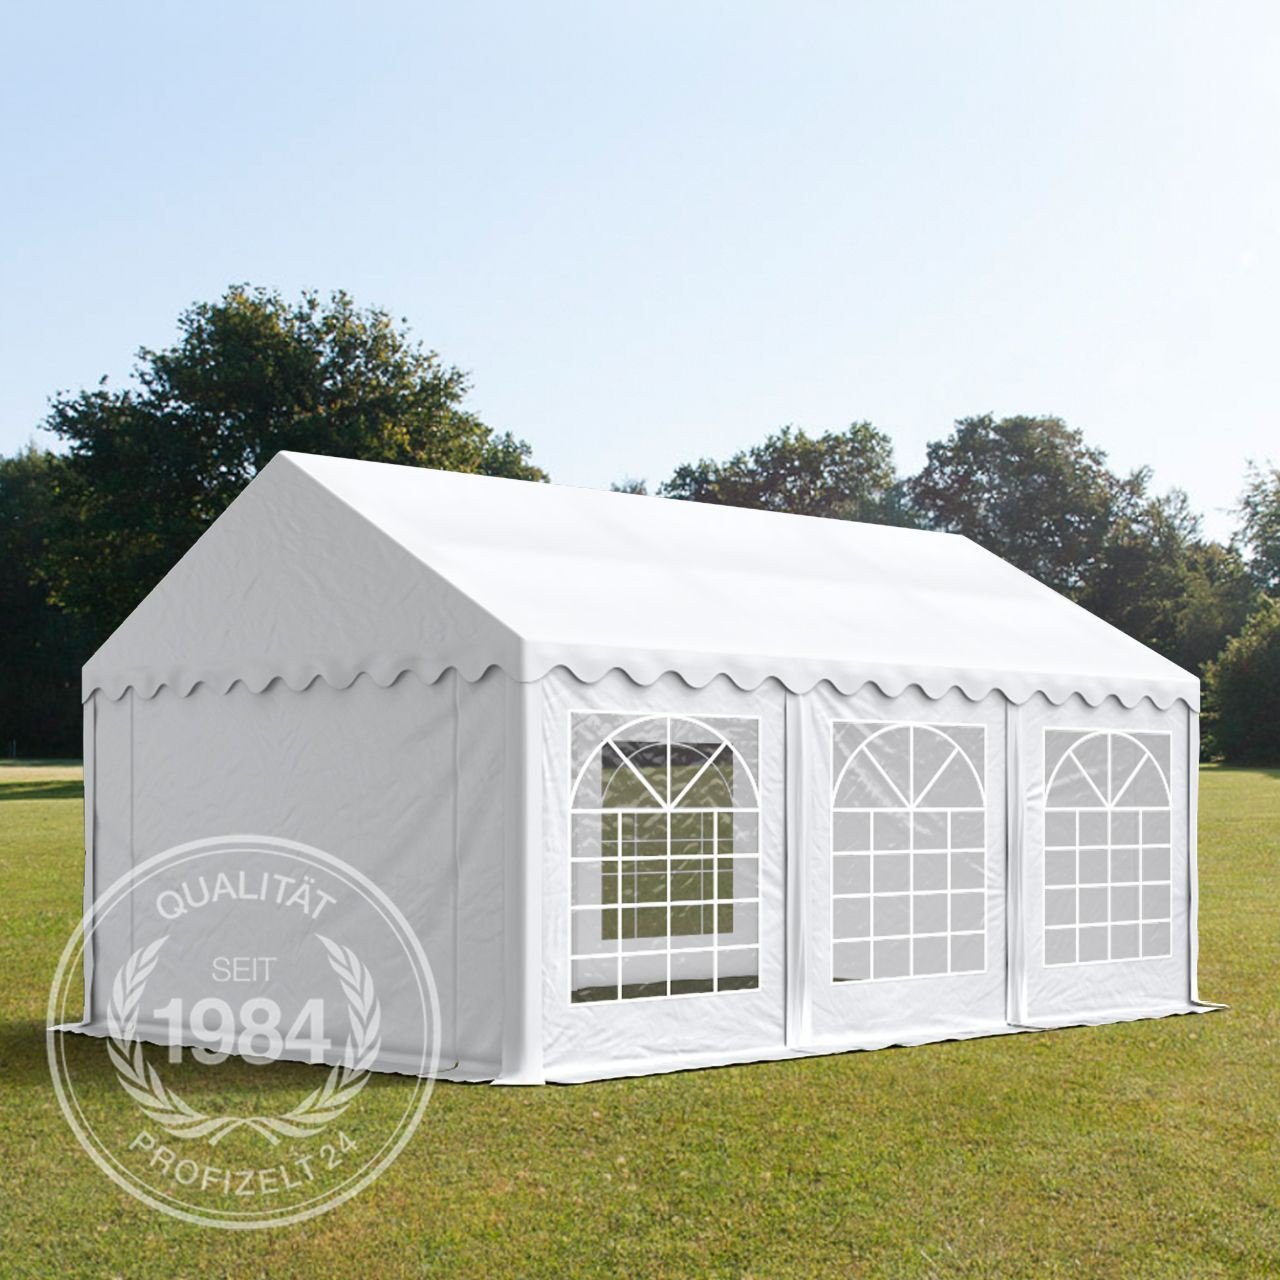 partyzelt 4x6 m pavillon festzelt gartenzelt 500g m pvc plane in wei ebay. Black Bedroom Furniture Sets. Home Design Ideas